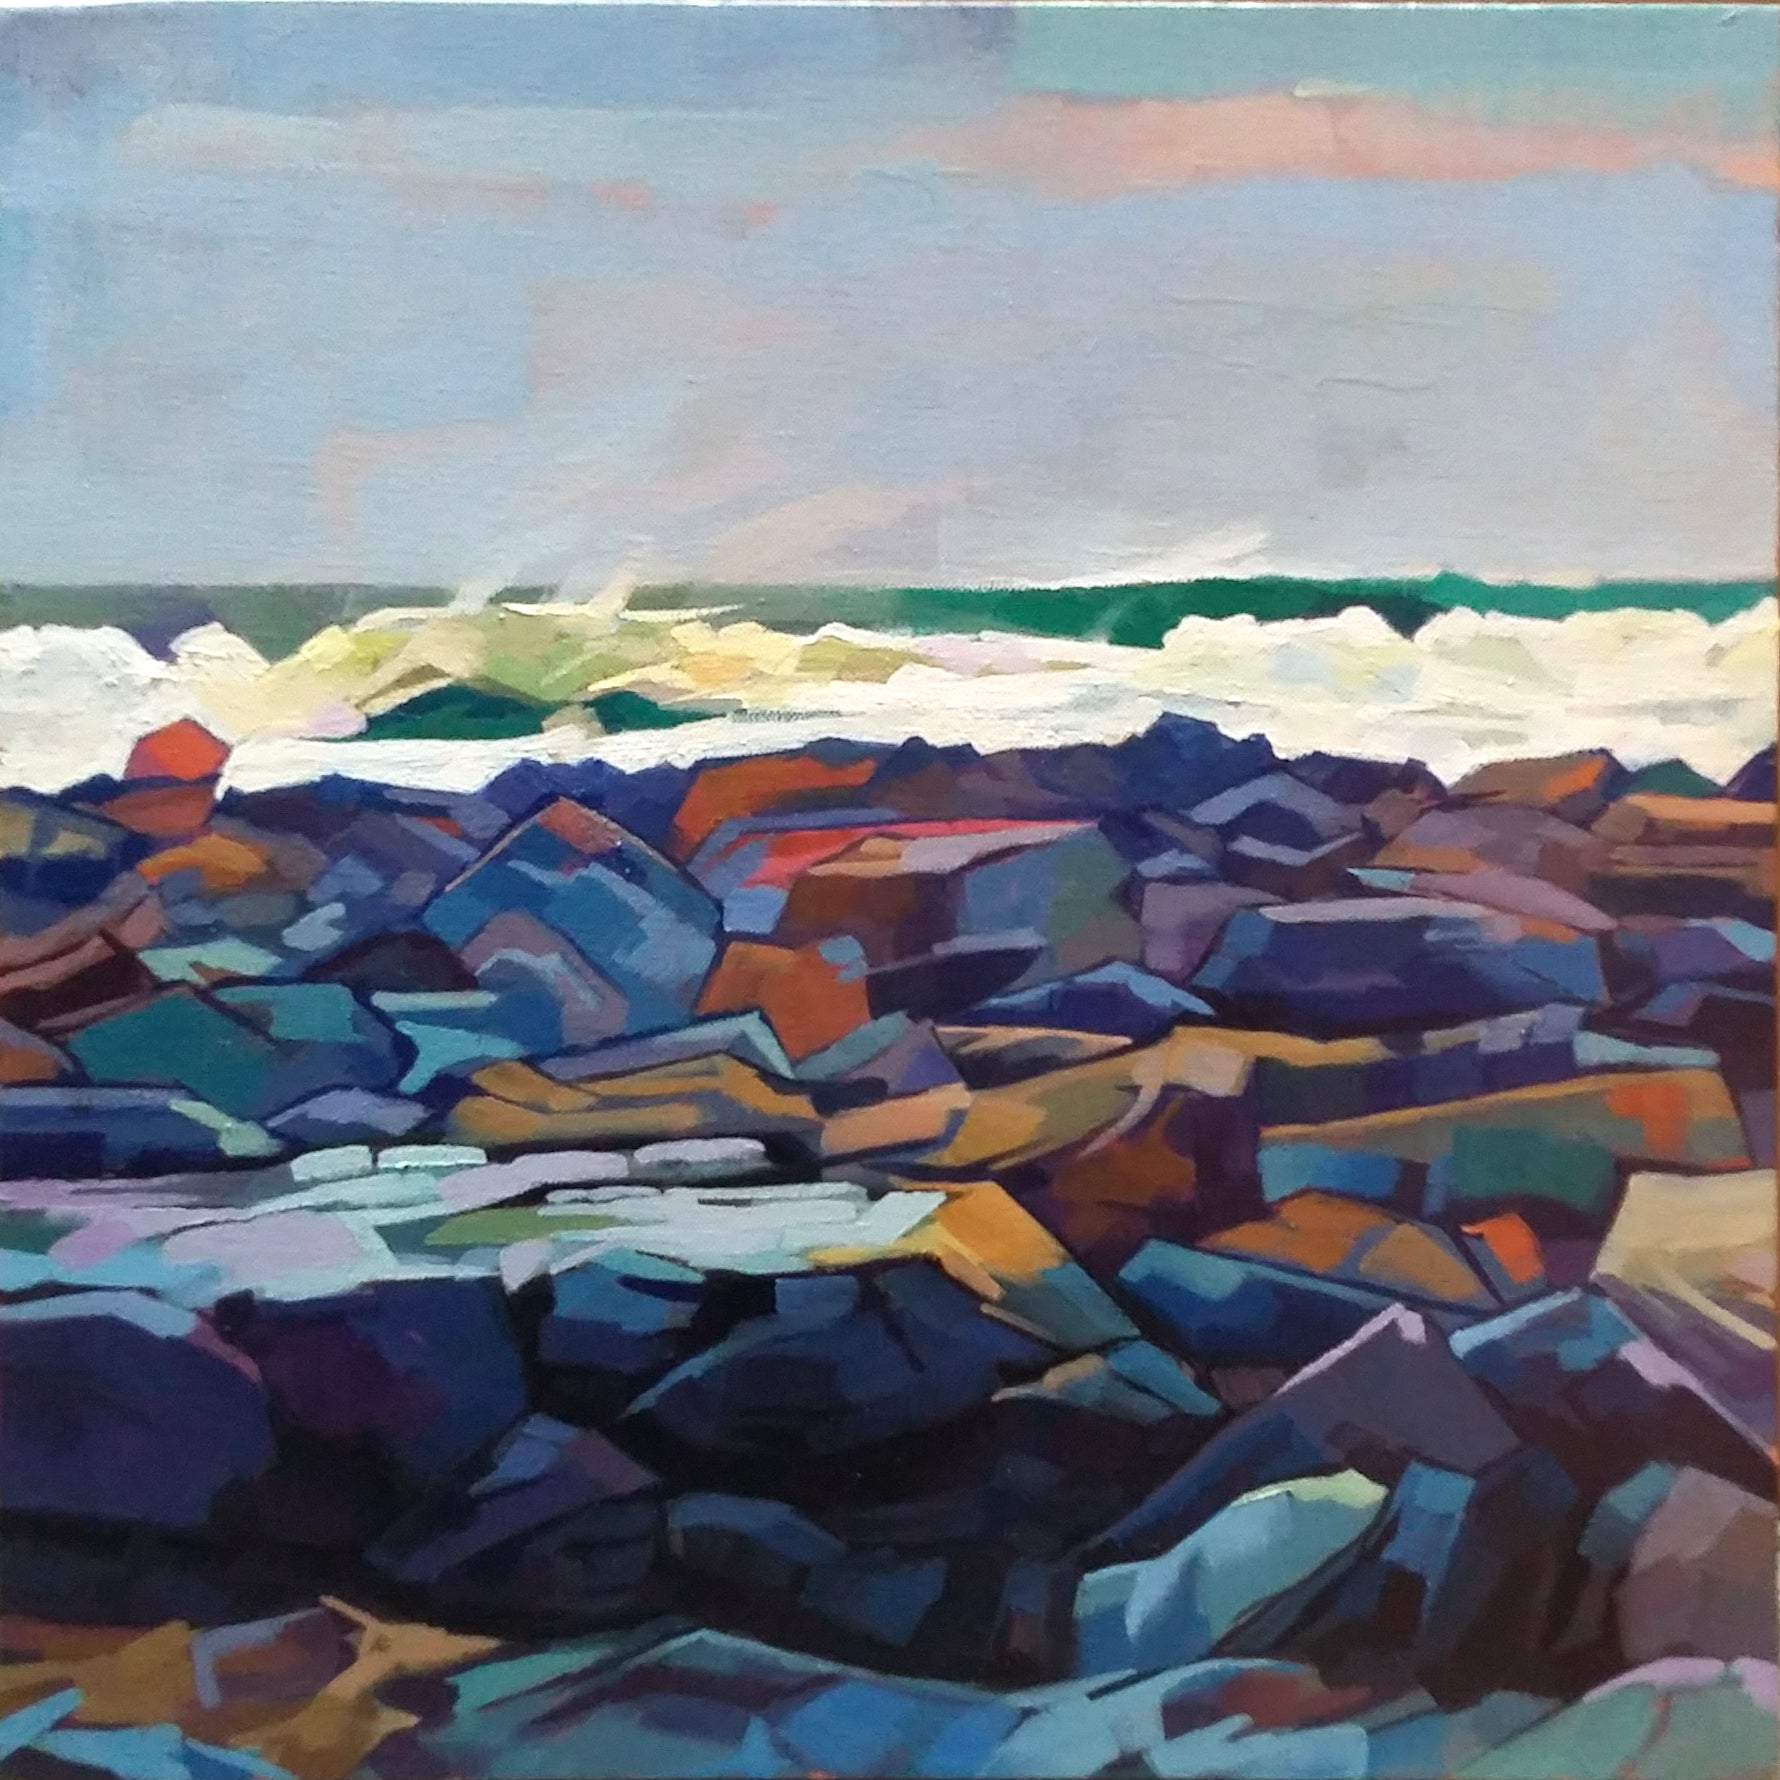 Tullaghan Shoreline, Storm Emma - Contemporary art from Ireland. Paintings & prints by Irish seascape & landscape artist Kevin Lowery.